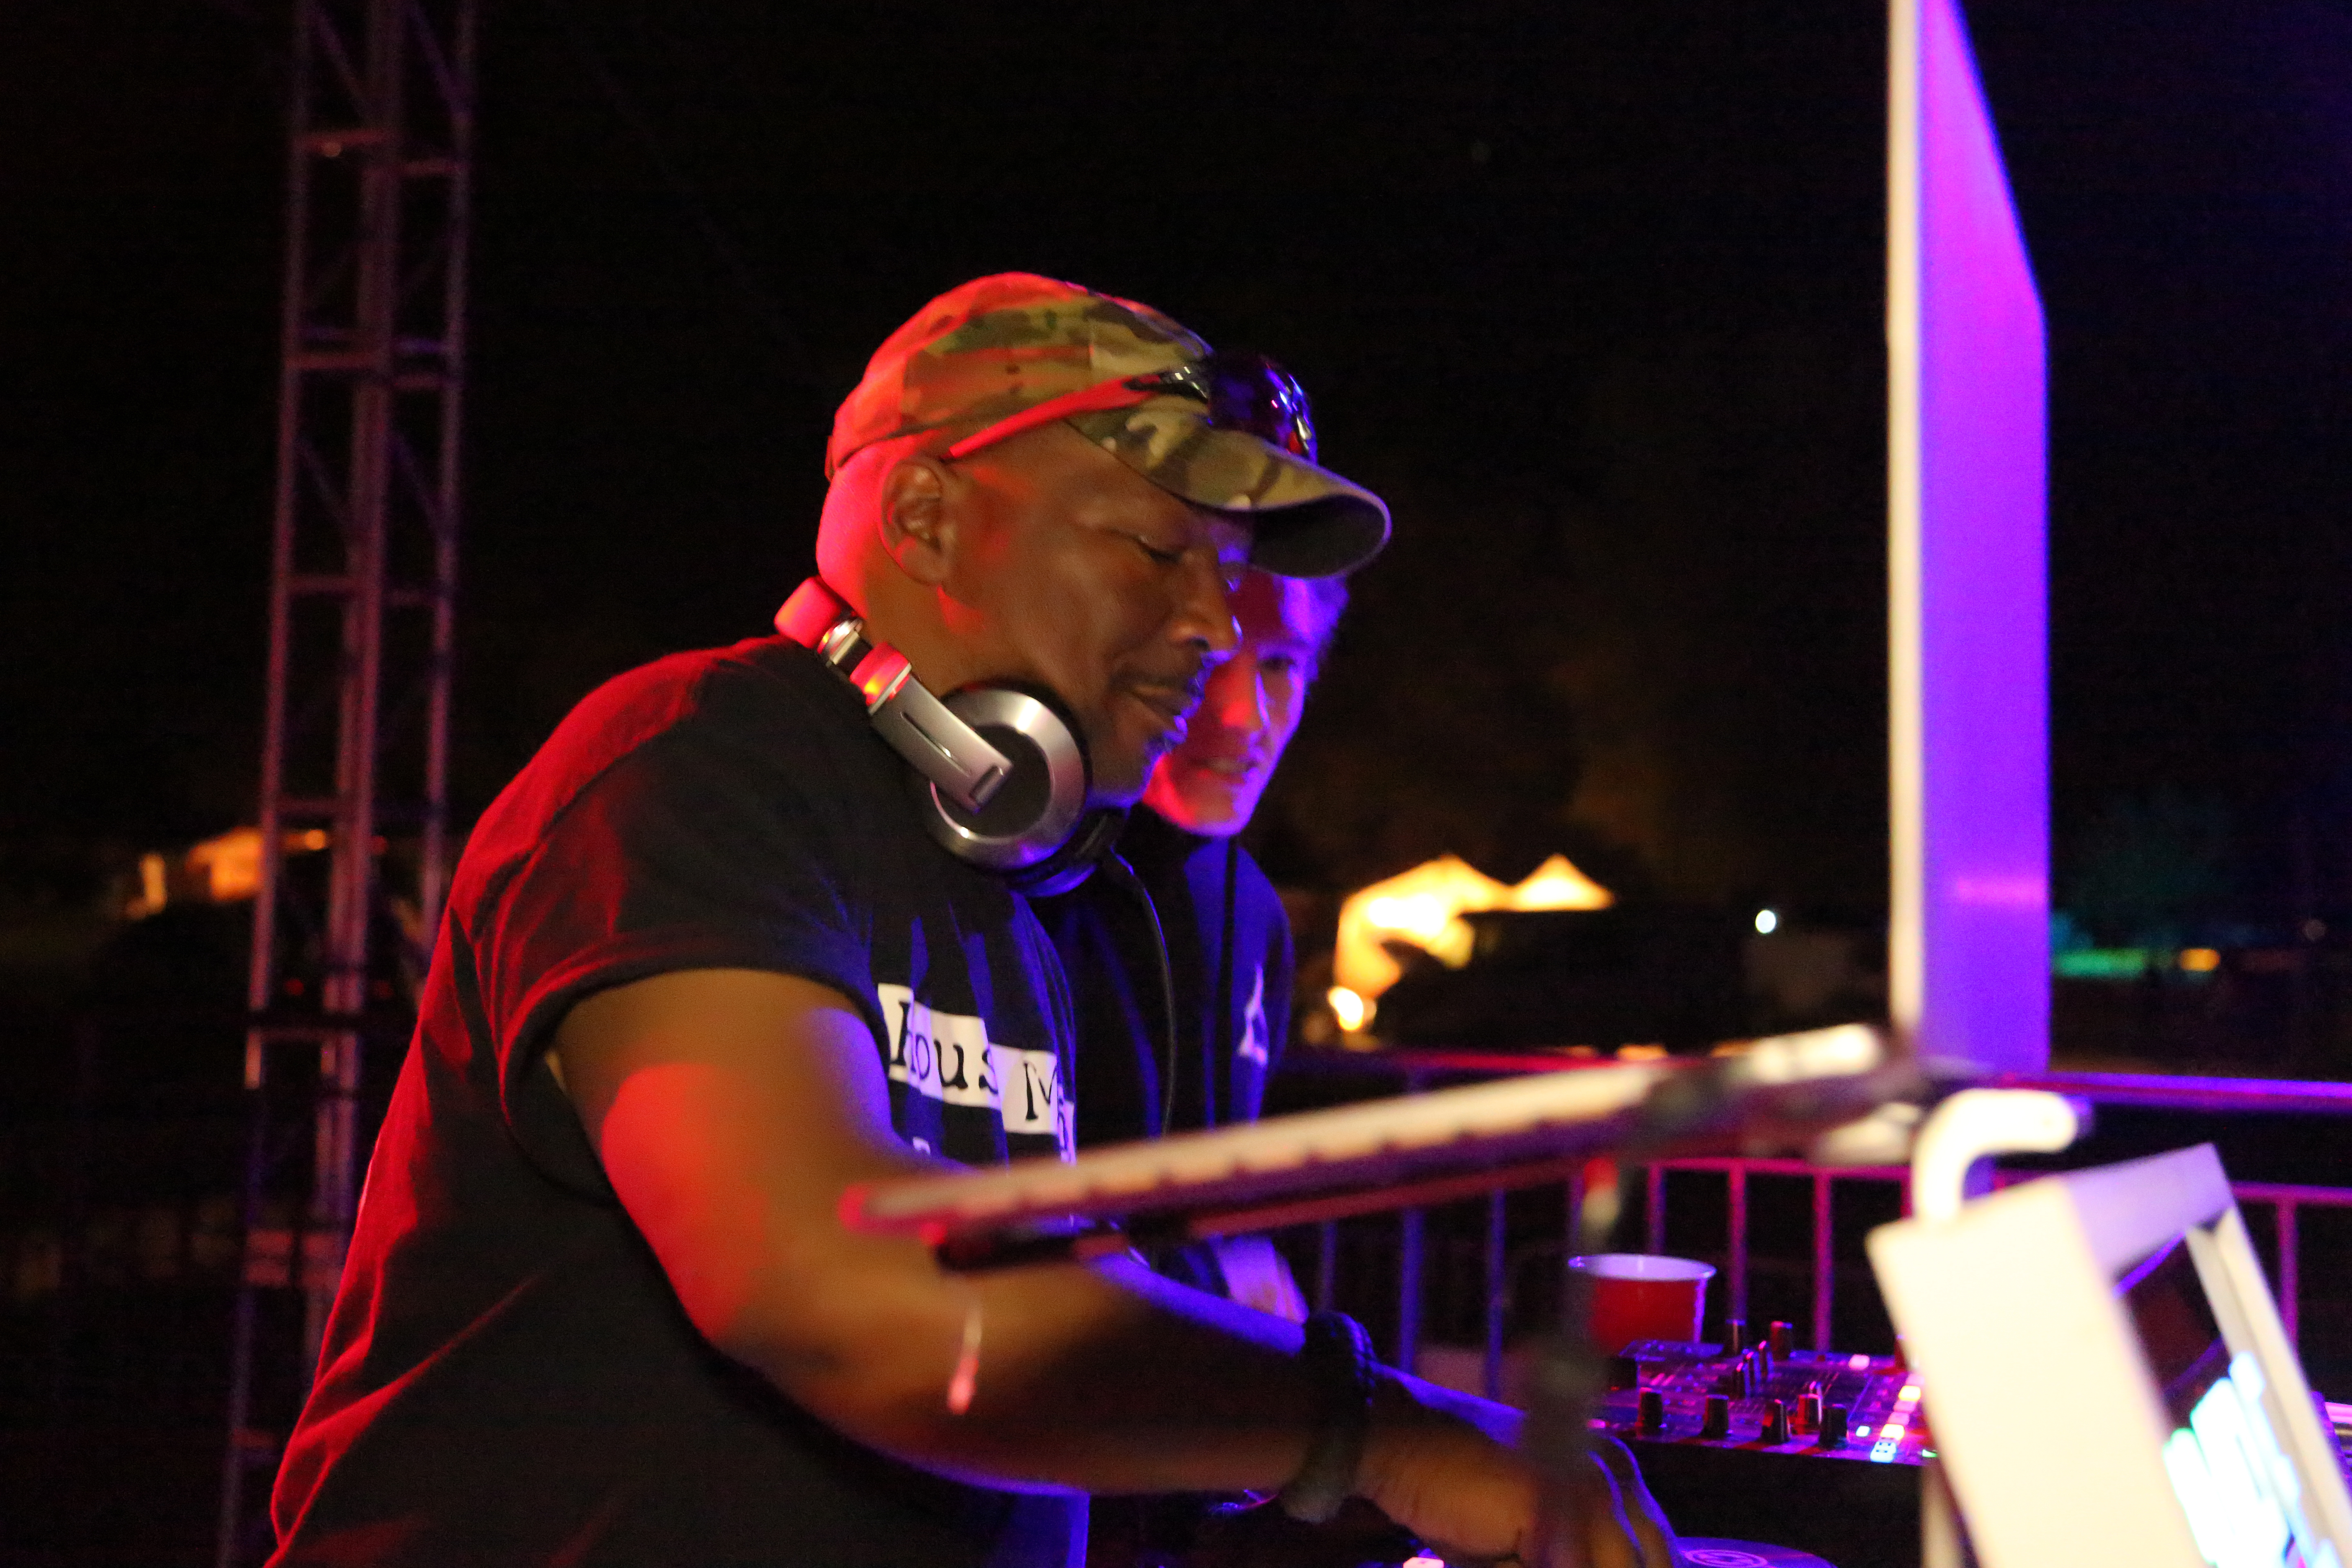 Chip E. at One Love Music Festiv8408